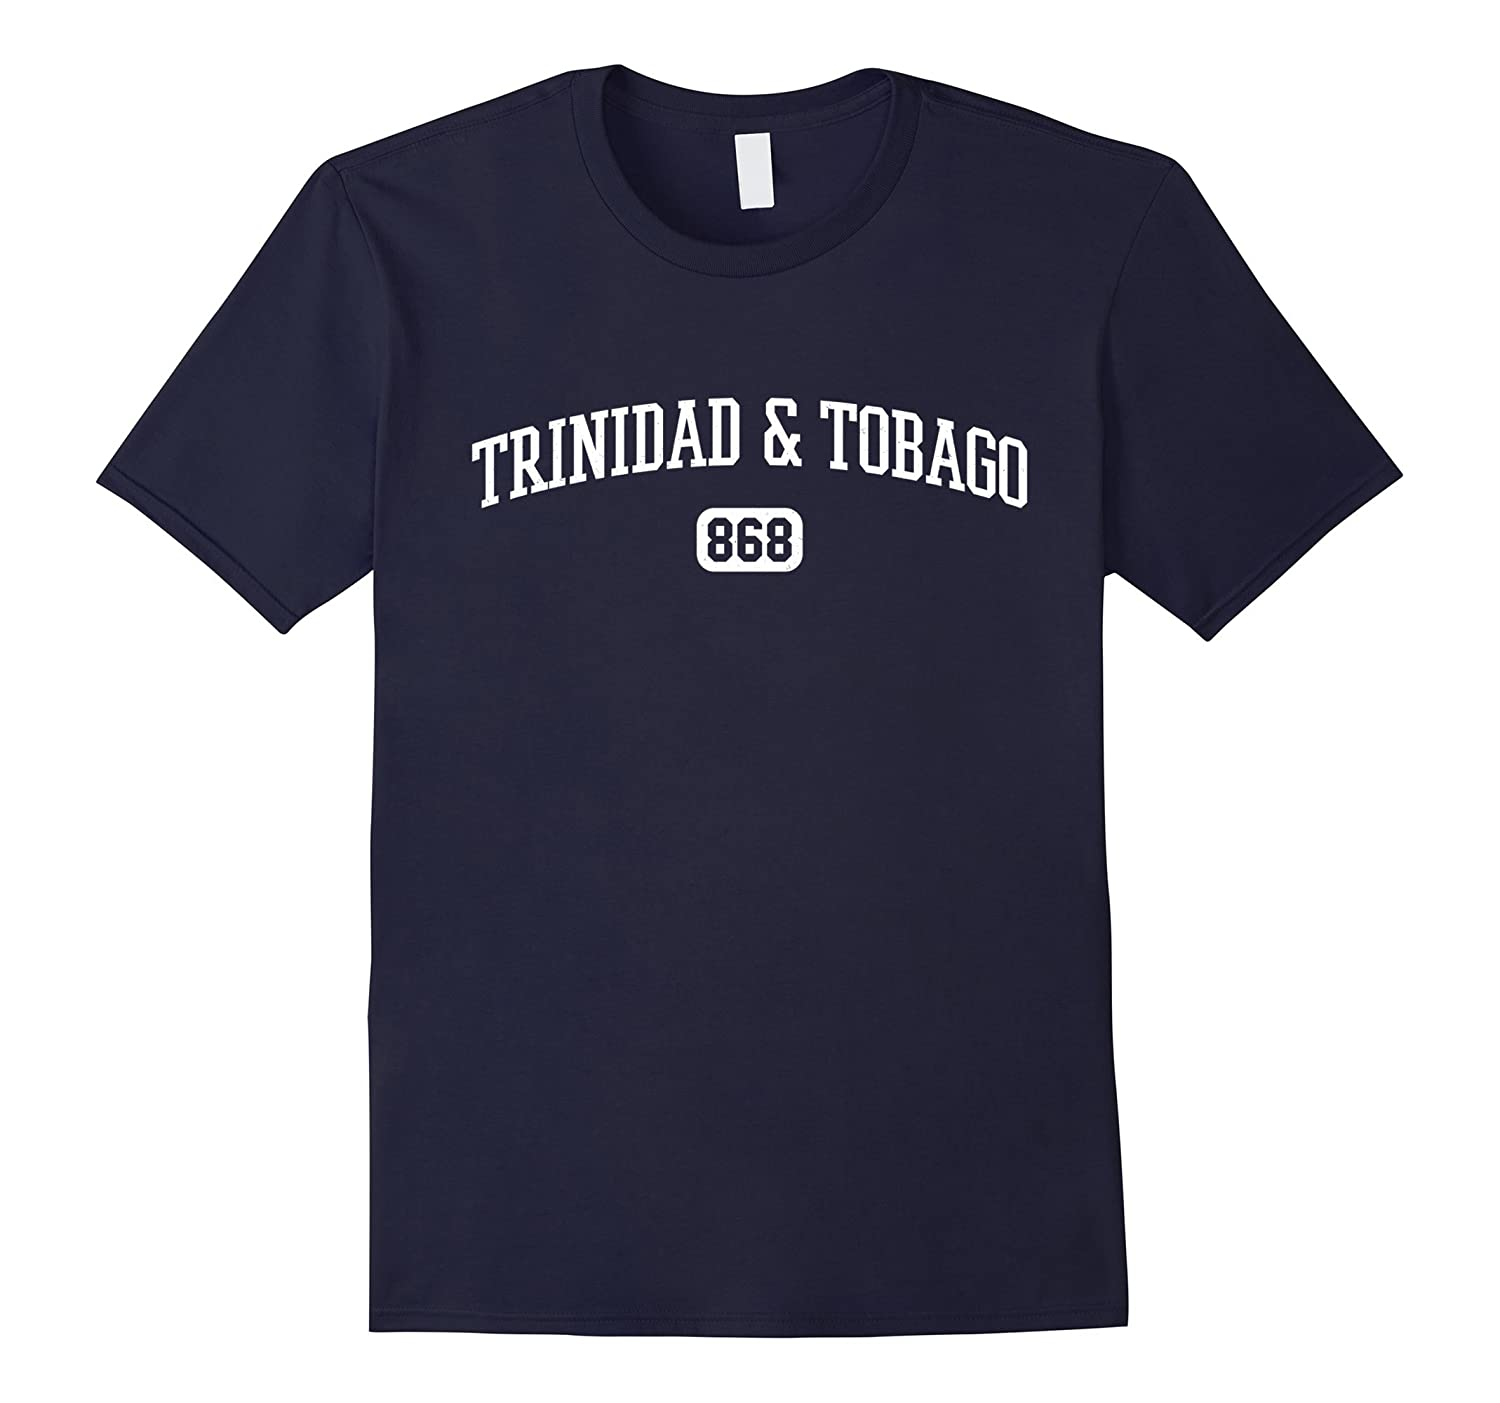 868 Trinidad Tobago Country Area Code Trinidadian Pride Tee-TH